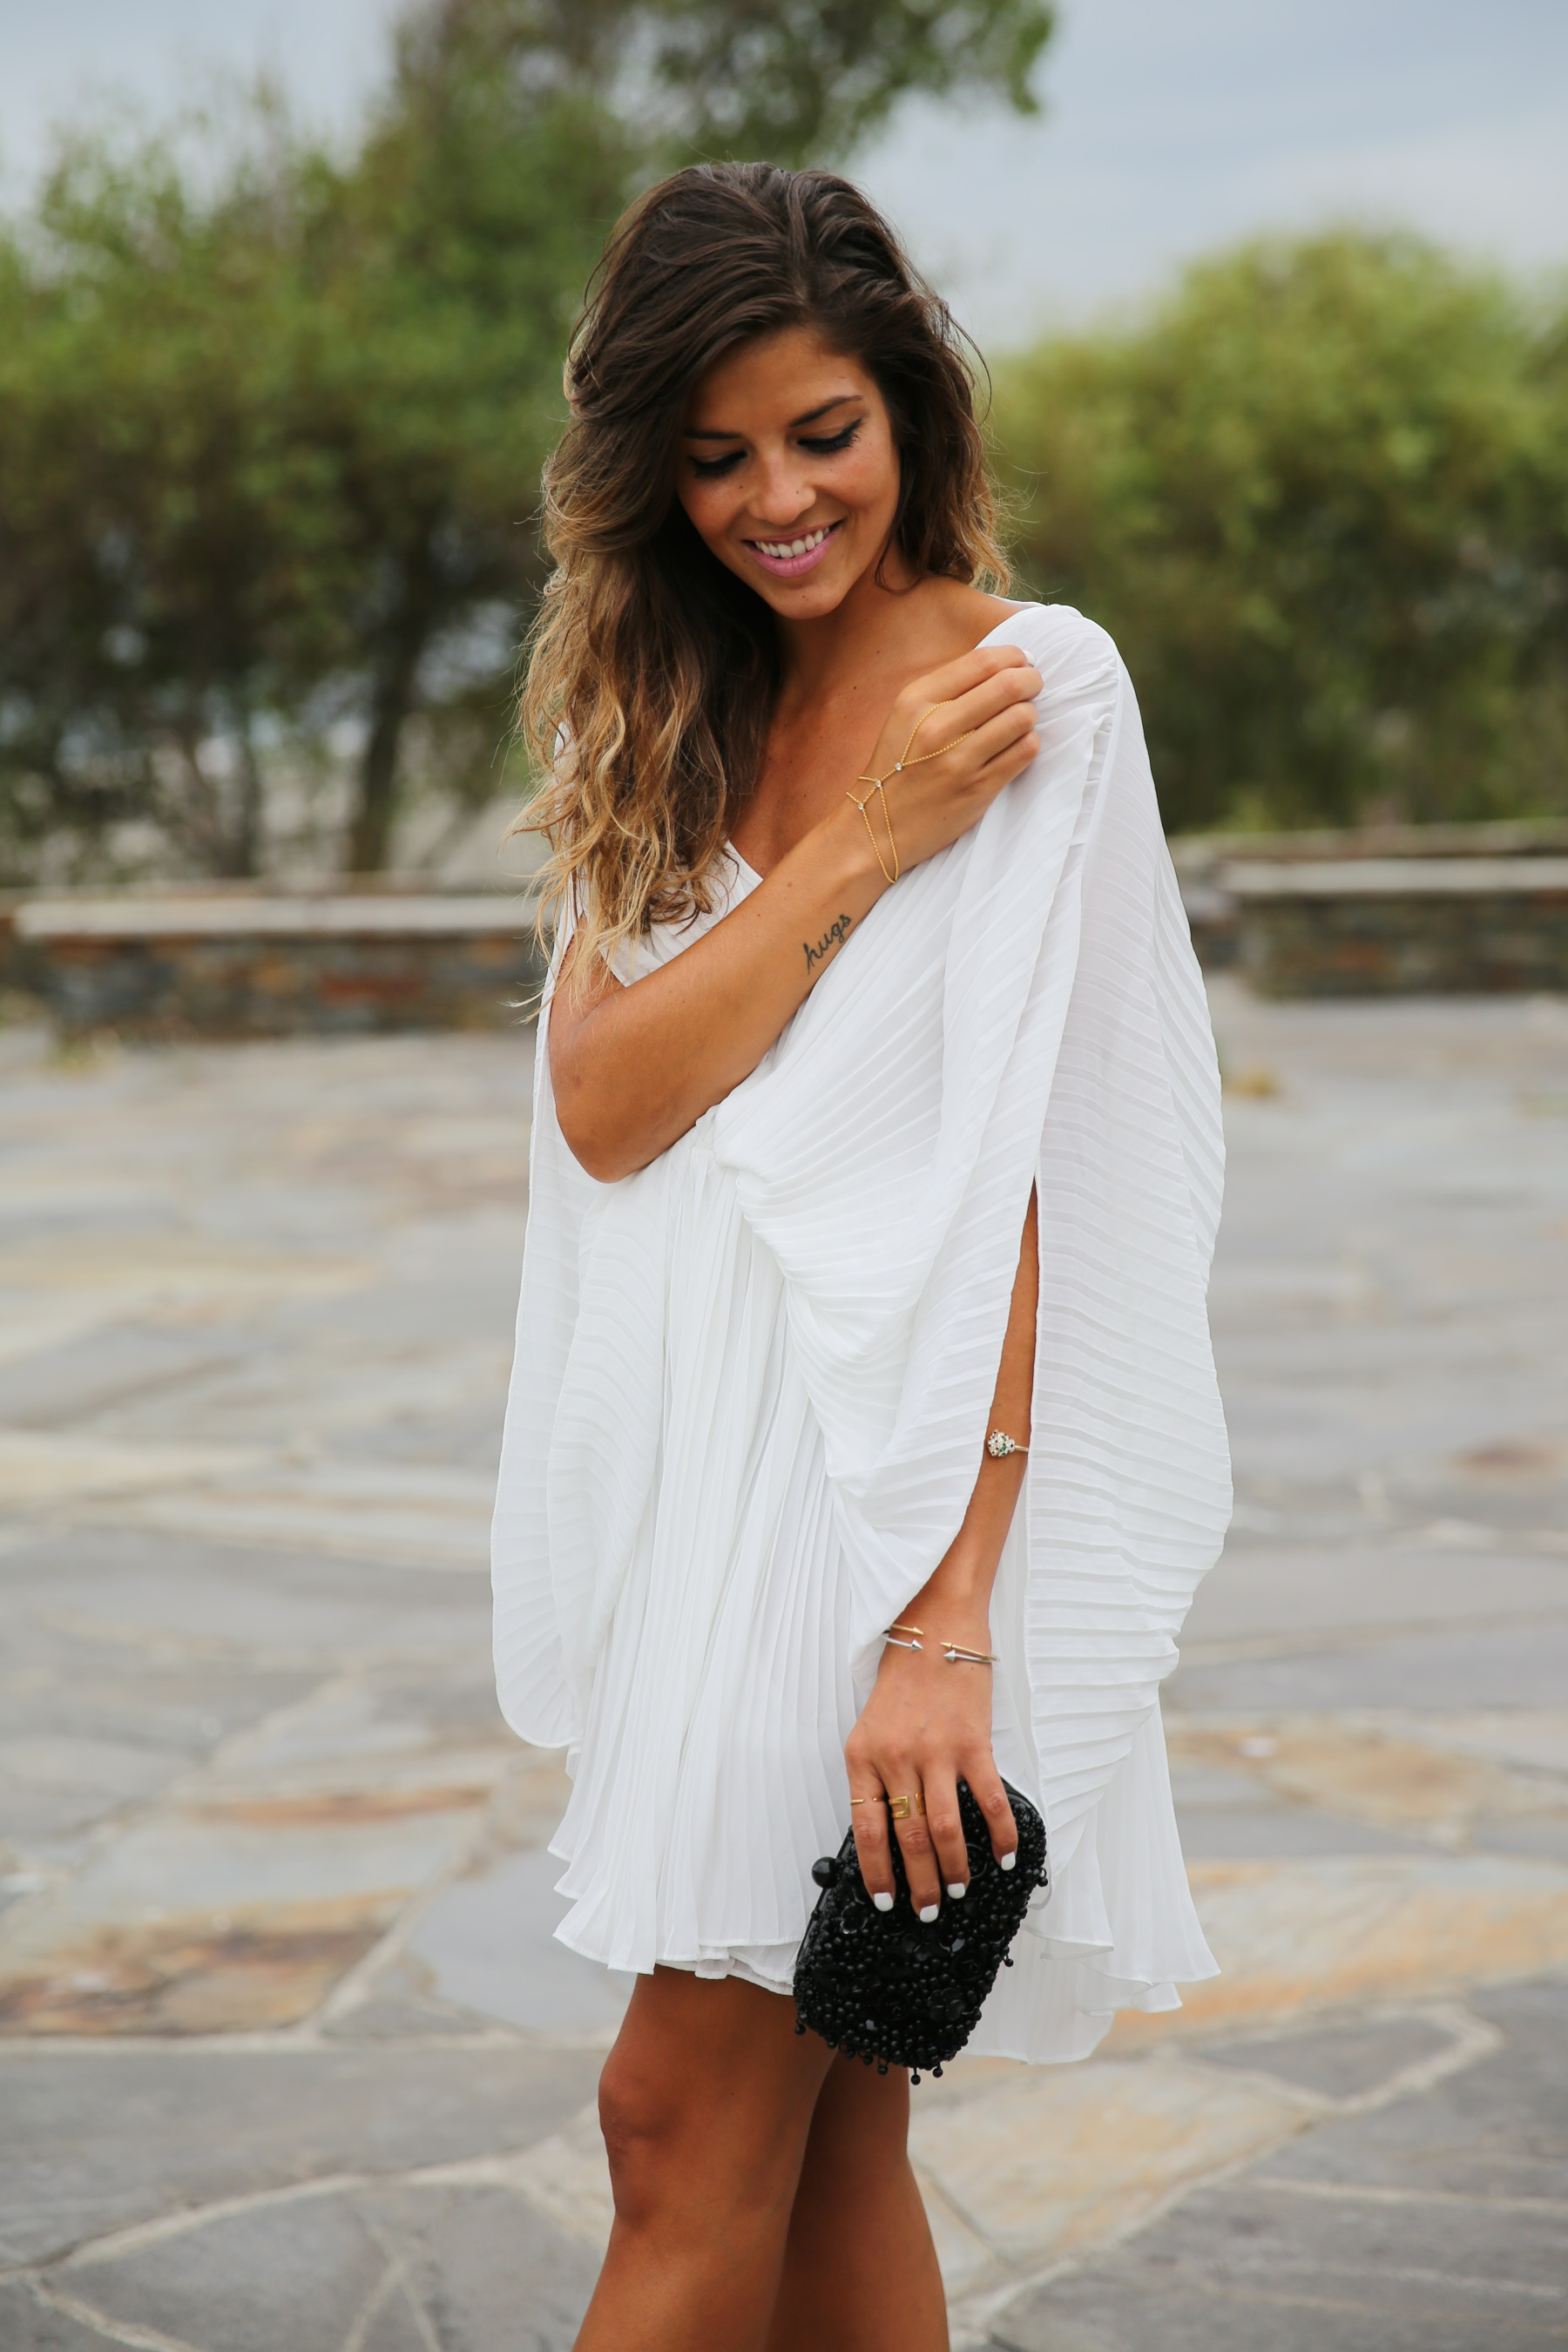 trendy_taste-look-outfit-street_style-fashion_spain-moda_españa-blog-blogger-vestido_blanco-white_dress-müic-jewels-joyas-leo_sandals-sandalias_leopardo-clutch_pedreria-6